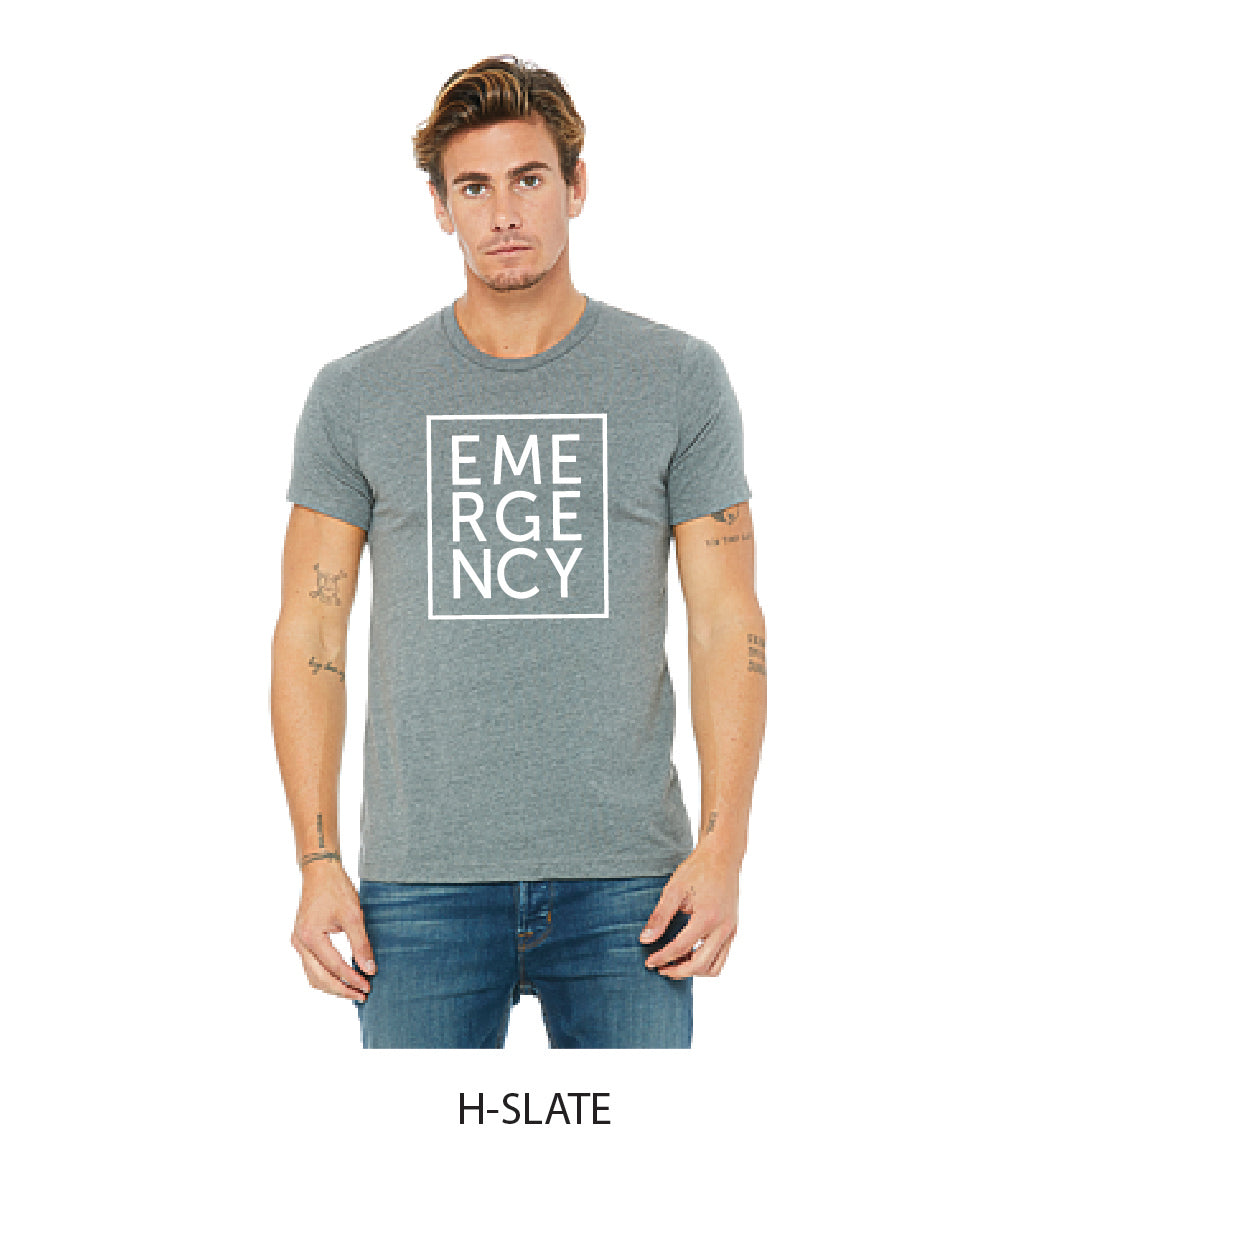 Emergency Square T-Shirt